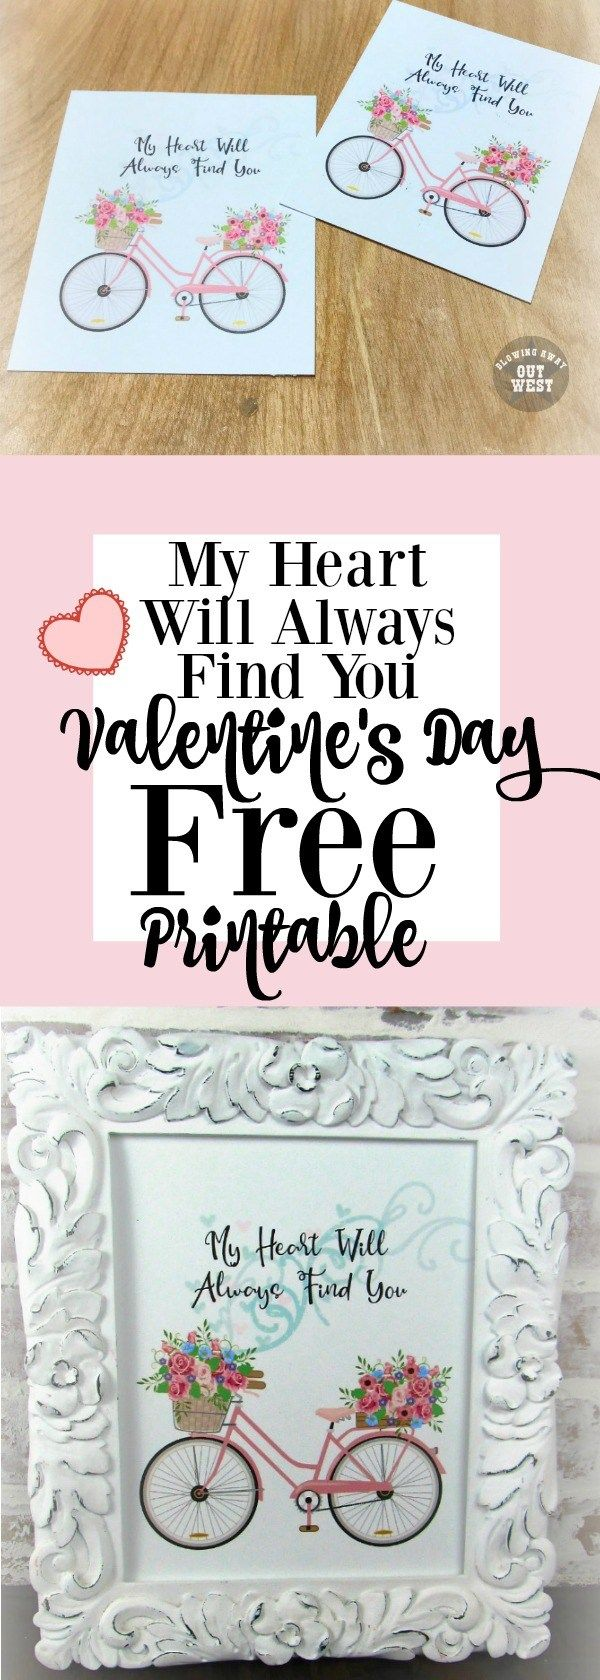 My Heart Will Always Find You: Free Valentine's Day Printable | blowingawayoutwest.com -Beautiful Bicycle & Hearts Framed Printable and Cards #freeprintable #freevalentine #freevalentinesdayprintable #bicycleprintable #bicycleprint #valentinecards